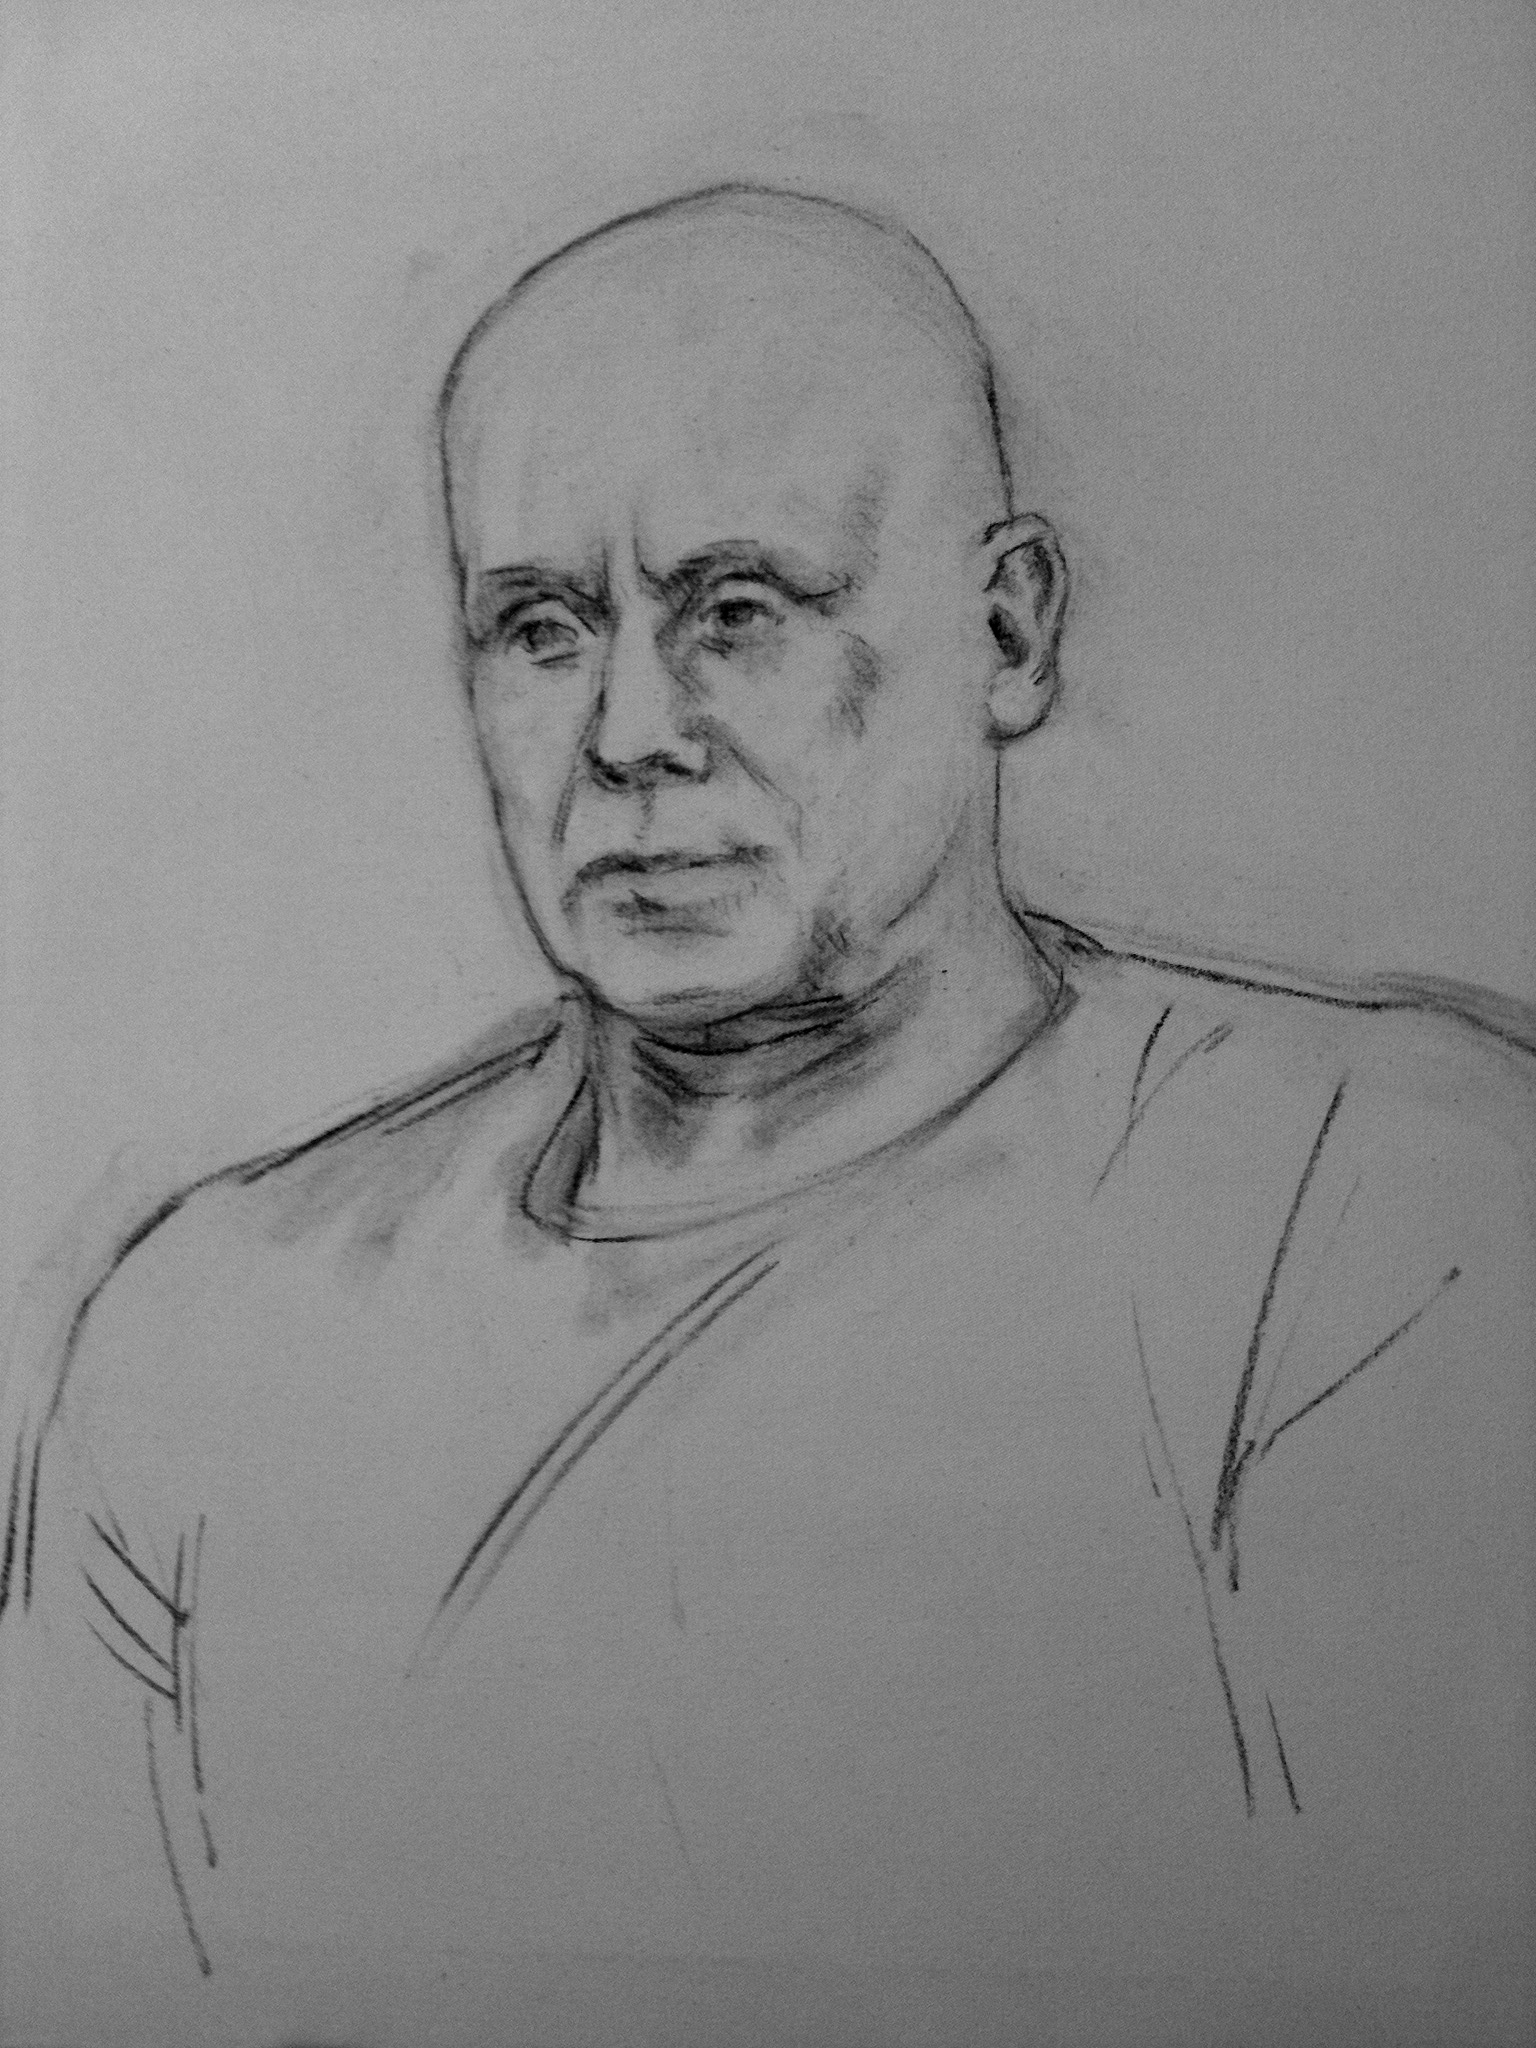 underdrawing for portrait of Kalervo